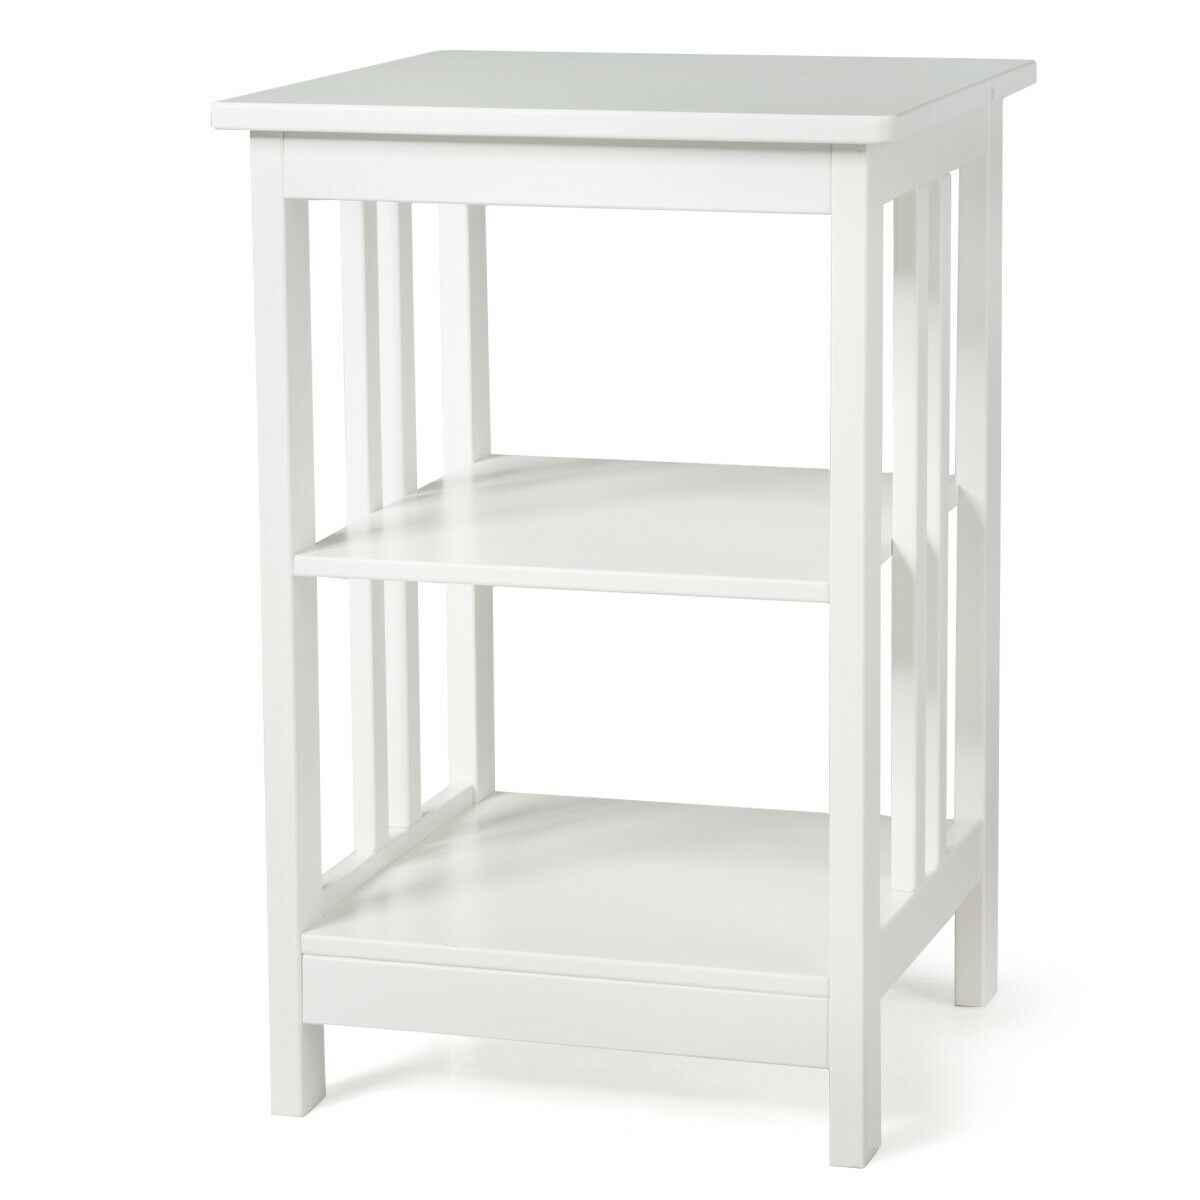 3 Tier Nightstand Side Table With Baffles And Corners White Sofa End Tables White Side Tables Square Side Table